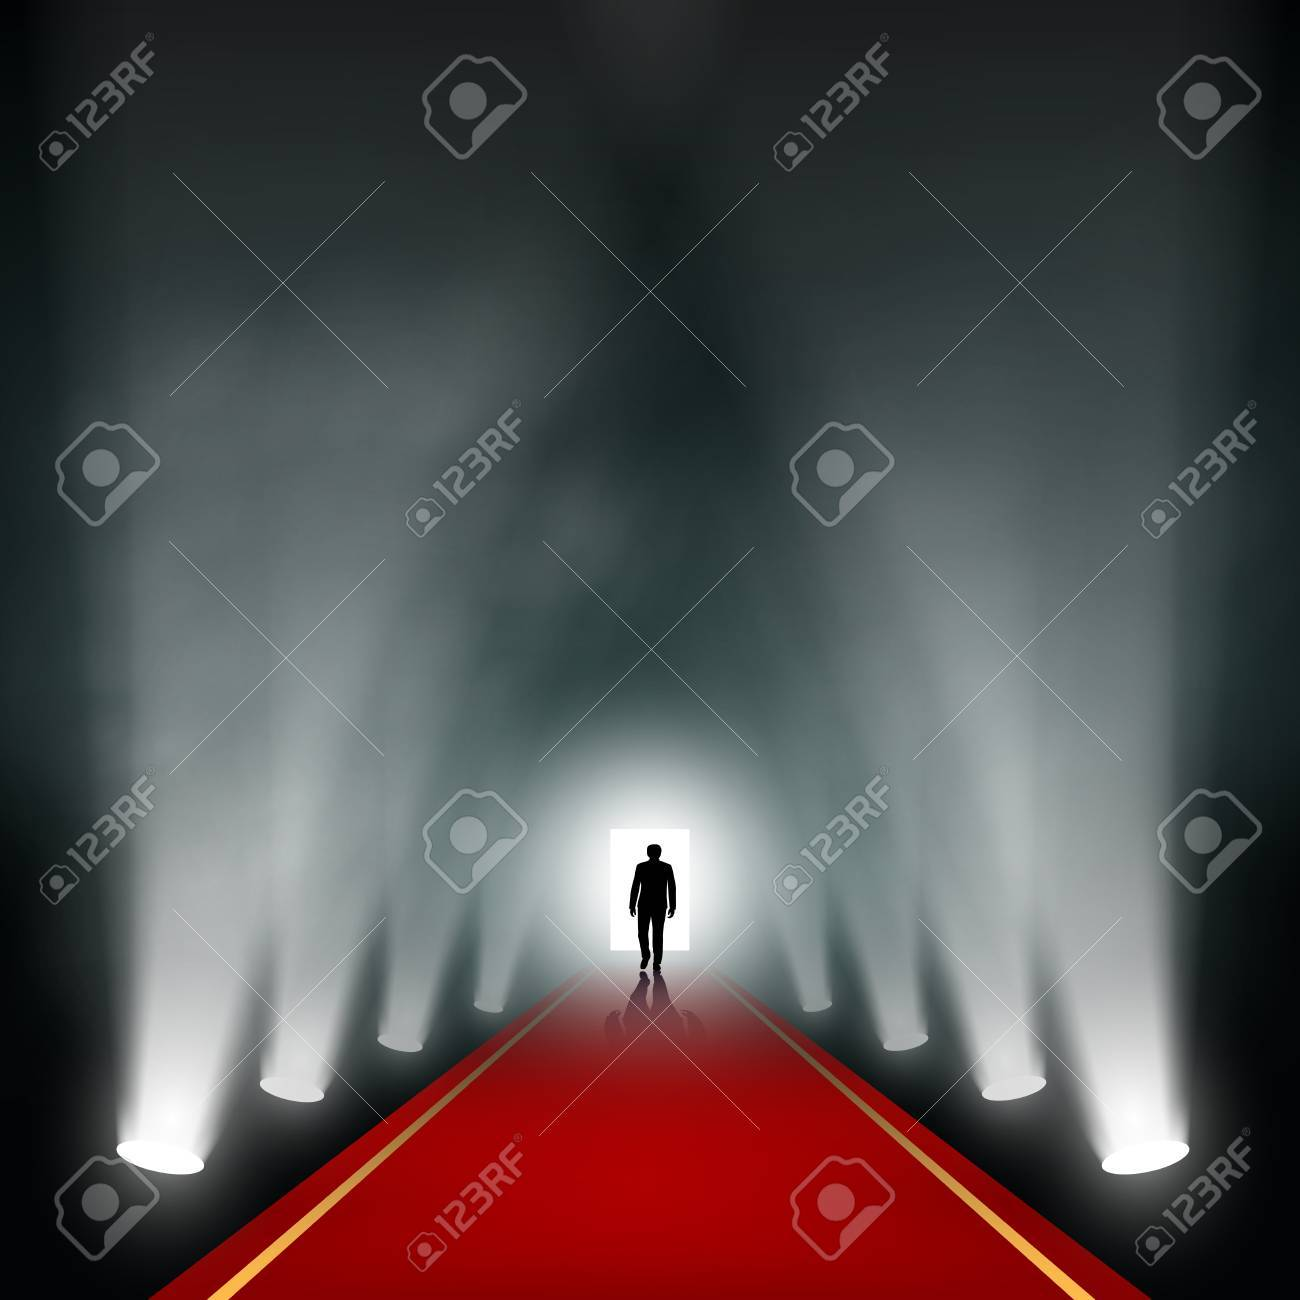 Man comes to the light. Vector image. - 41134621